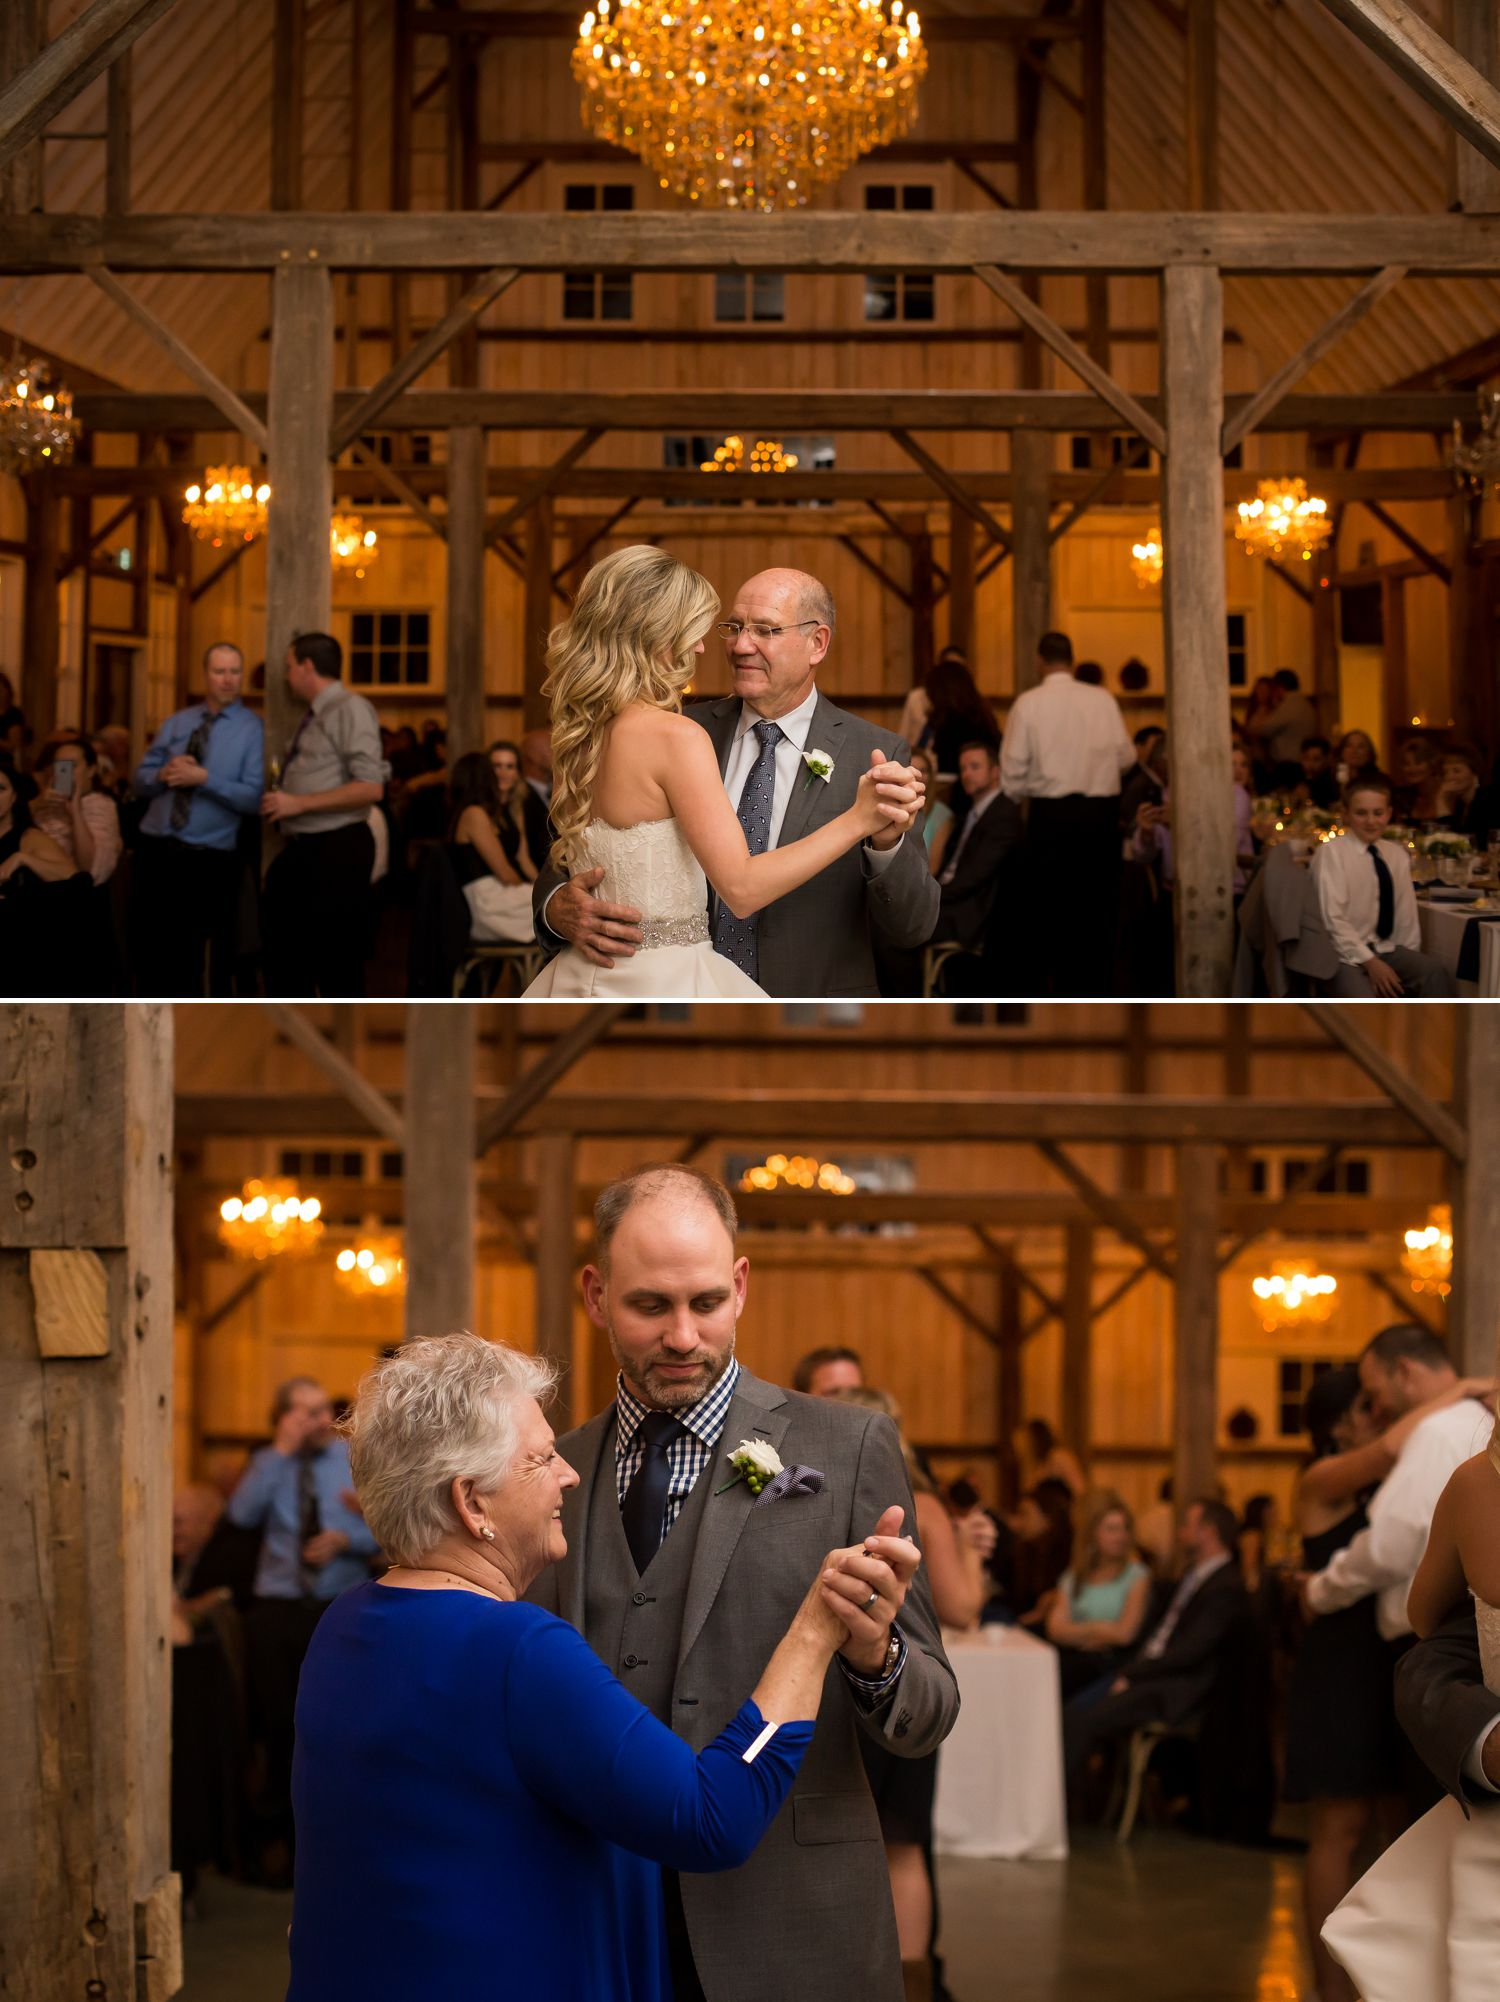 The bride and groom during their first dances with their parents at the Stonefields Wedding Reception